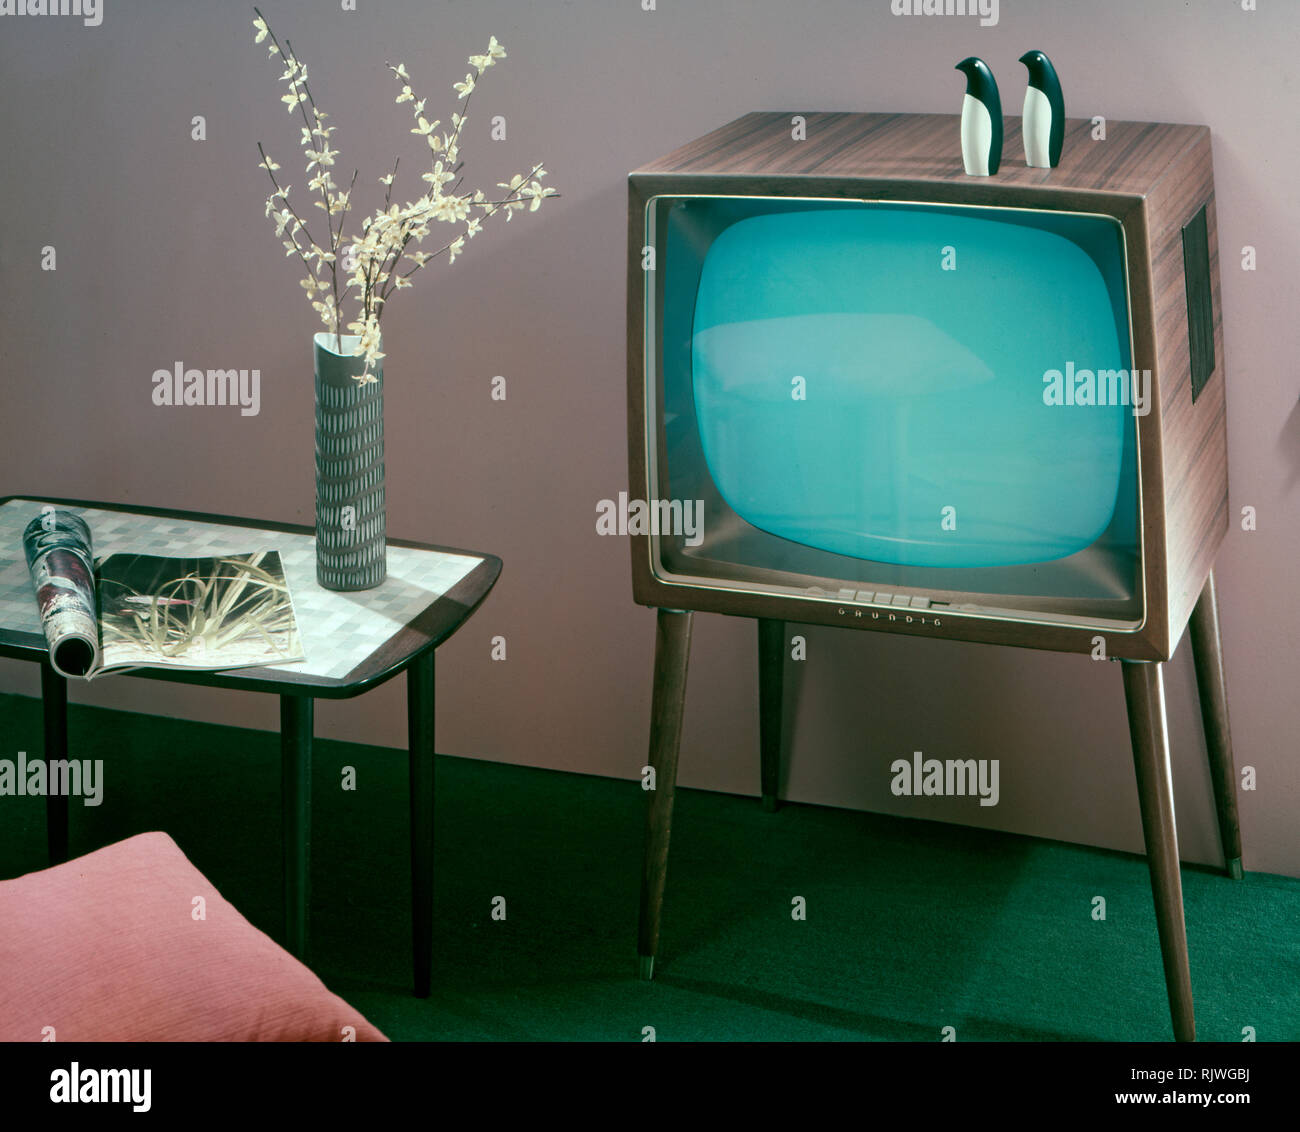 Television in the 1950s. A Grundig television set that was available for customers 1957. A typical 1950s design with a wooden case standing on thin legs. ref BV66-2 - Stock Image